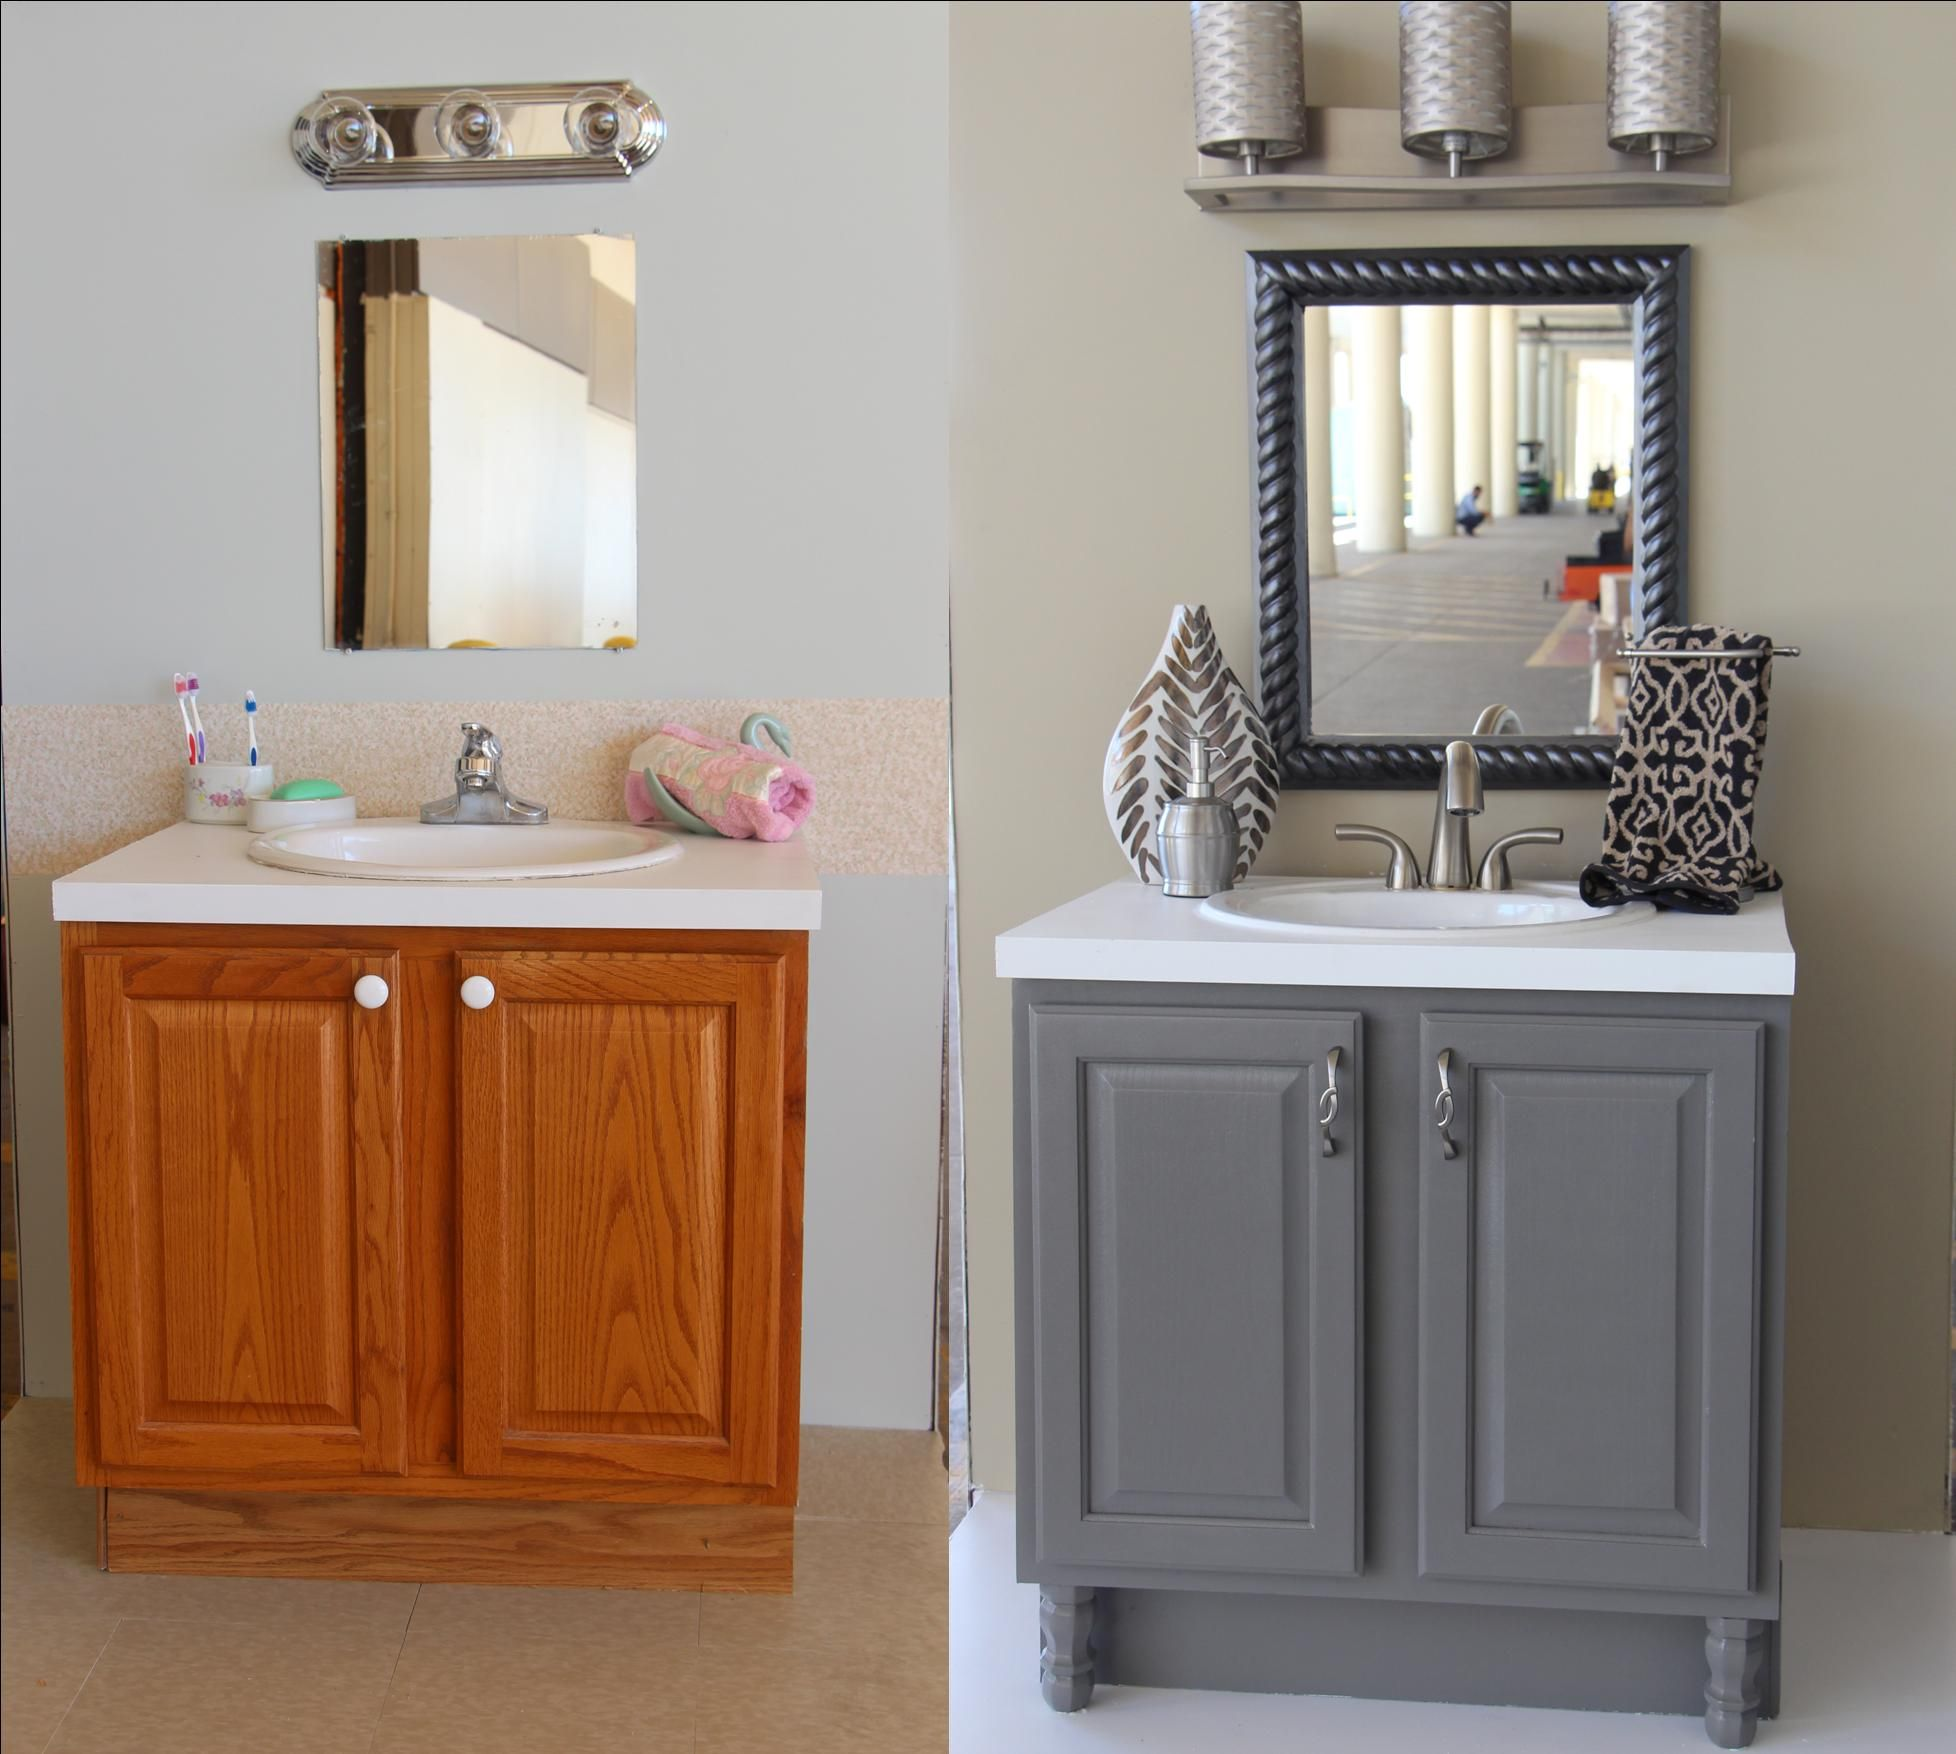 Bathroom Updates You Can Do This Weekend Bathroom Ideas - Best place to buy vanity for bathroom for bathroom decor ideas